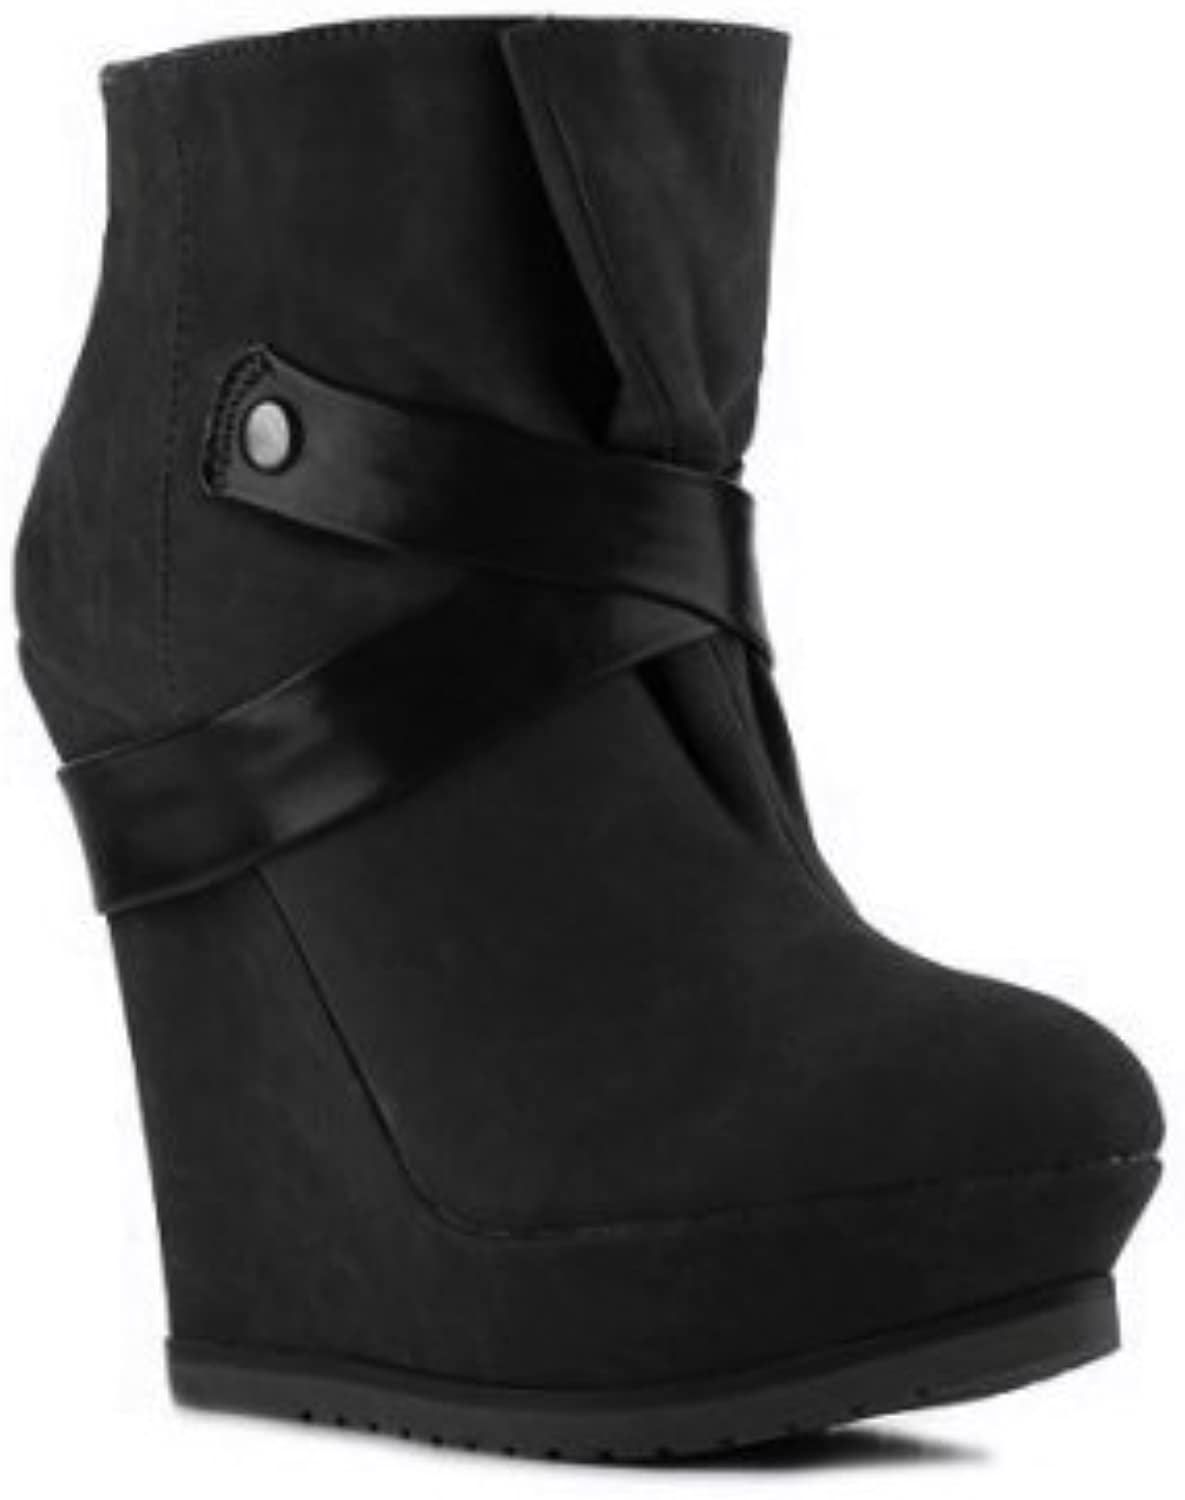 Qupid Parlane-06 Faux Suede Wedge Platform Ankle Booties High Top Platform Heel Boot